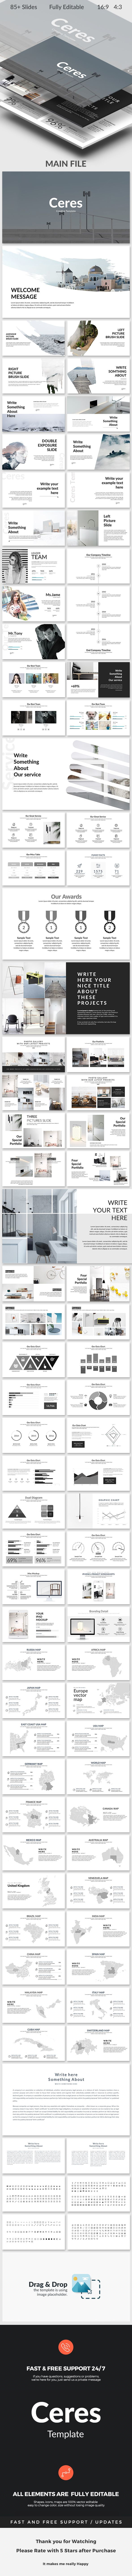 25 unique creative powerpoint templates ideas on pinterest buy ceres creative powerpoint template by eggstudiodesign on graphicriver features unique slides aspect ratio no more broken images pronofoot35fo Image collections